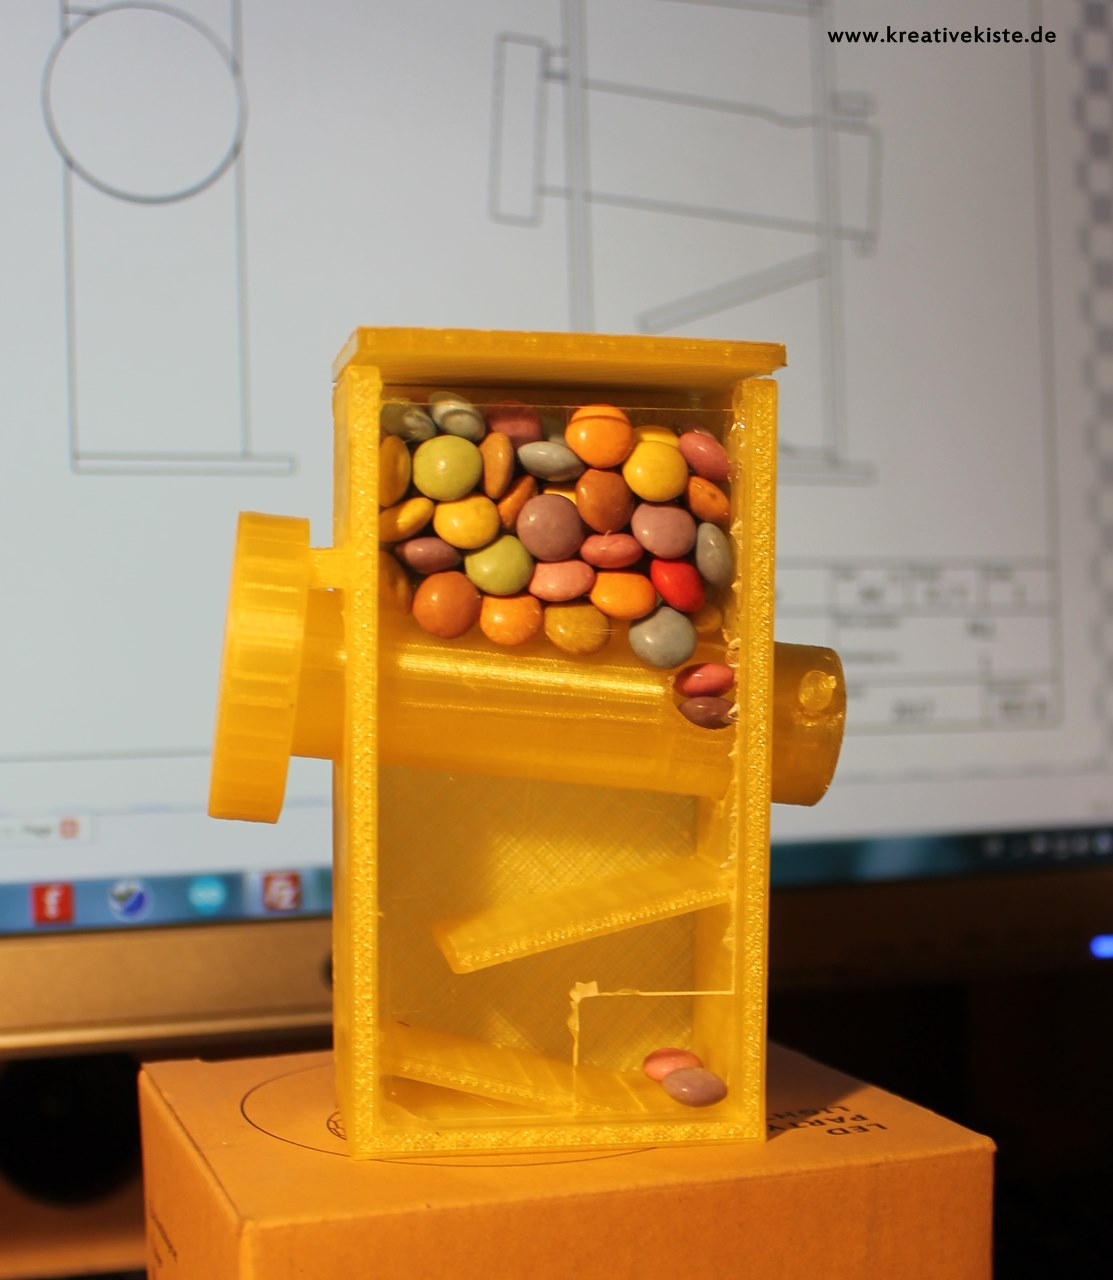 3D print candy dispenser 2.0